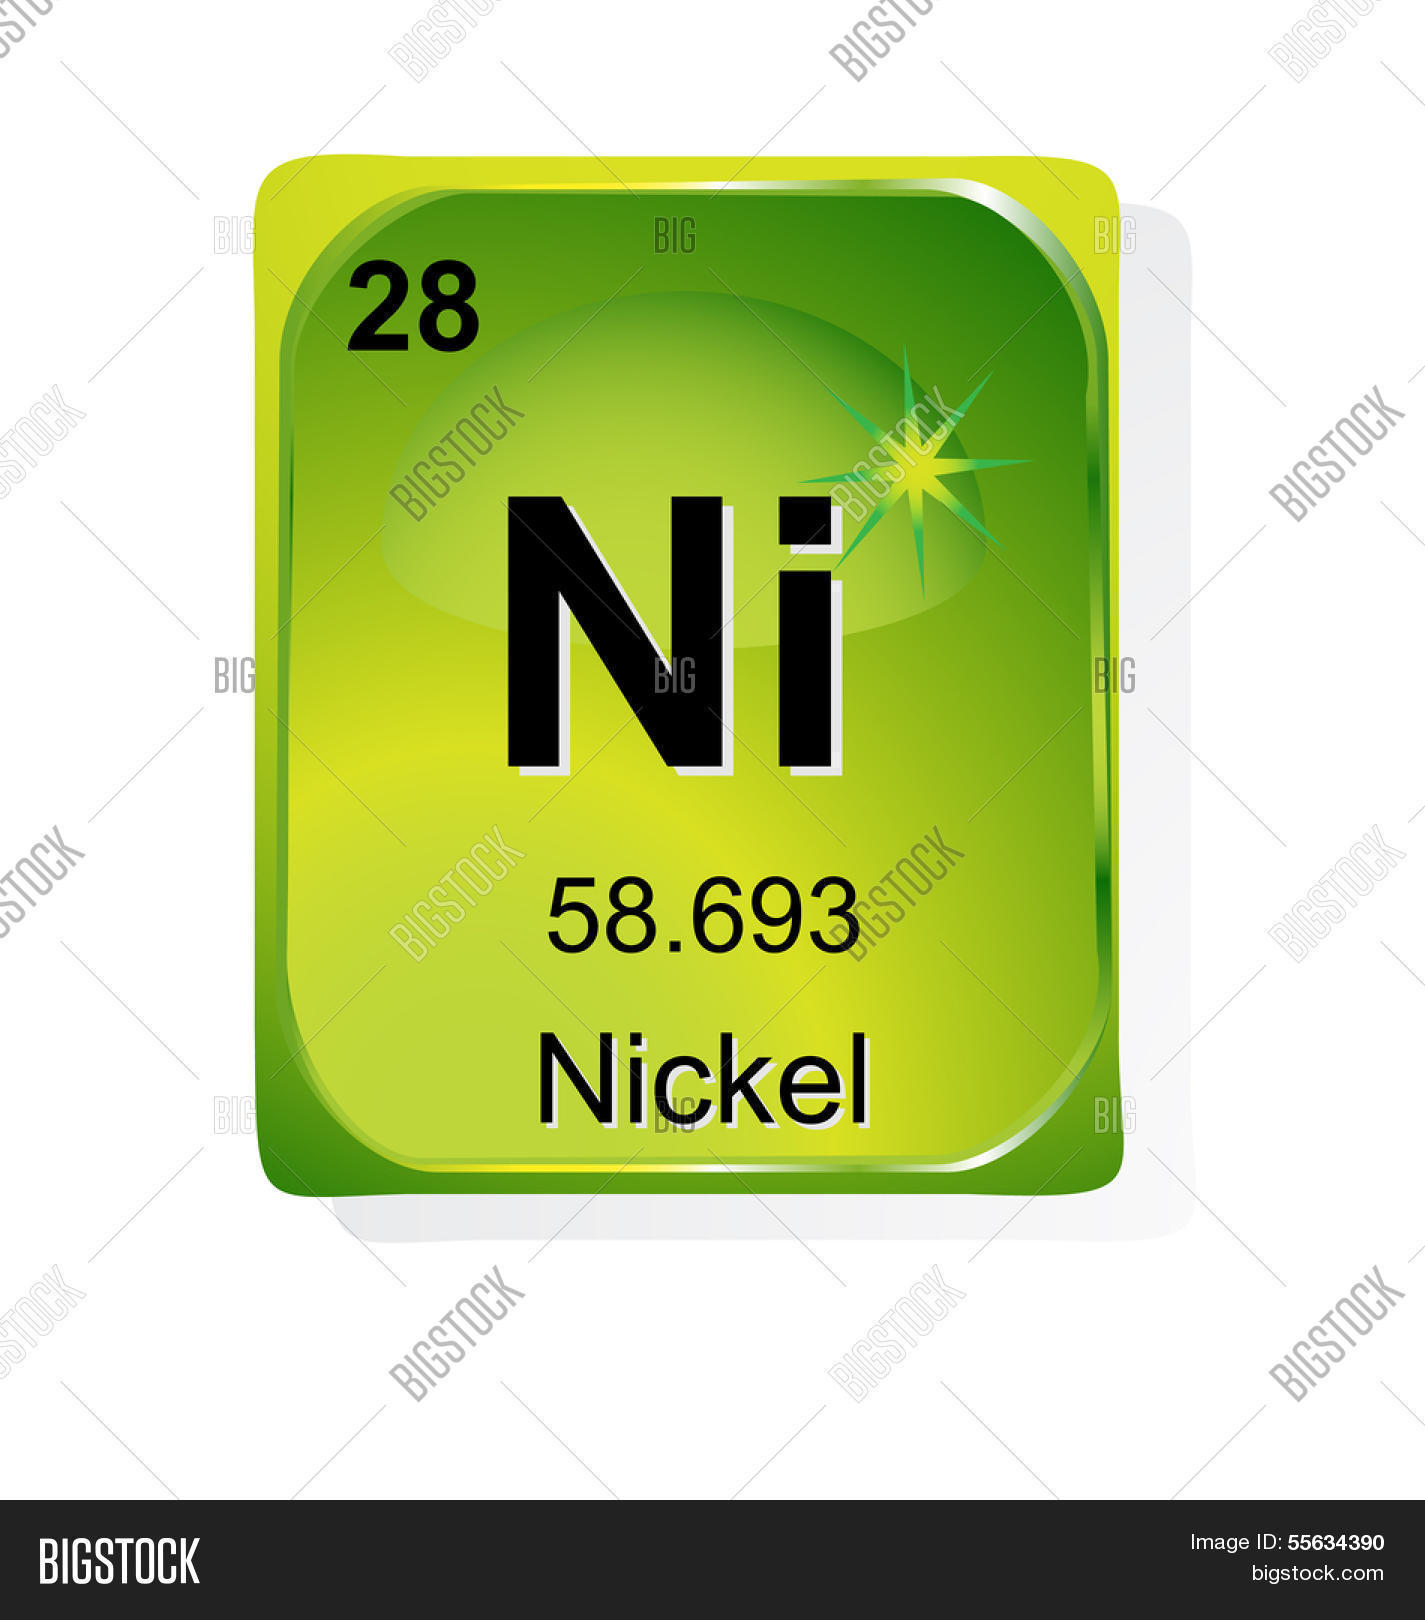 chemical element and nickel Cobalt is a chemical element with symbol co and atomic number 27 like nickel, cobalt is found in the earth's crust only in chemically combined form, save for small deposits found in alloys.